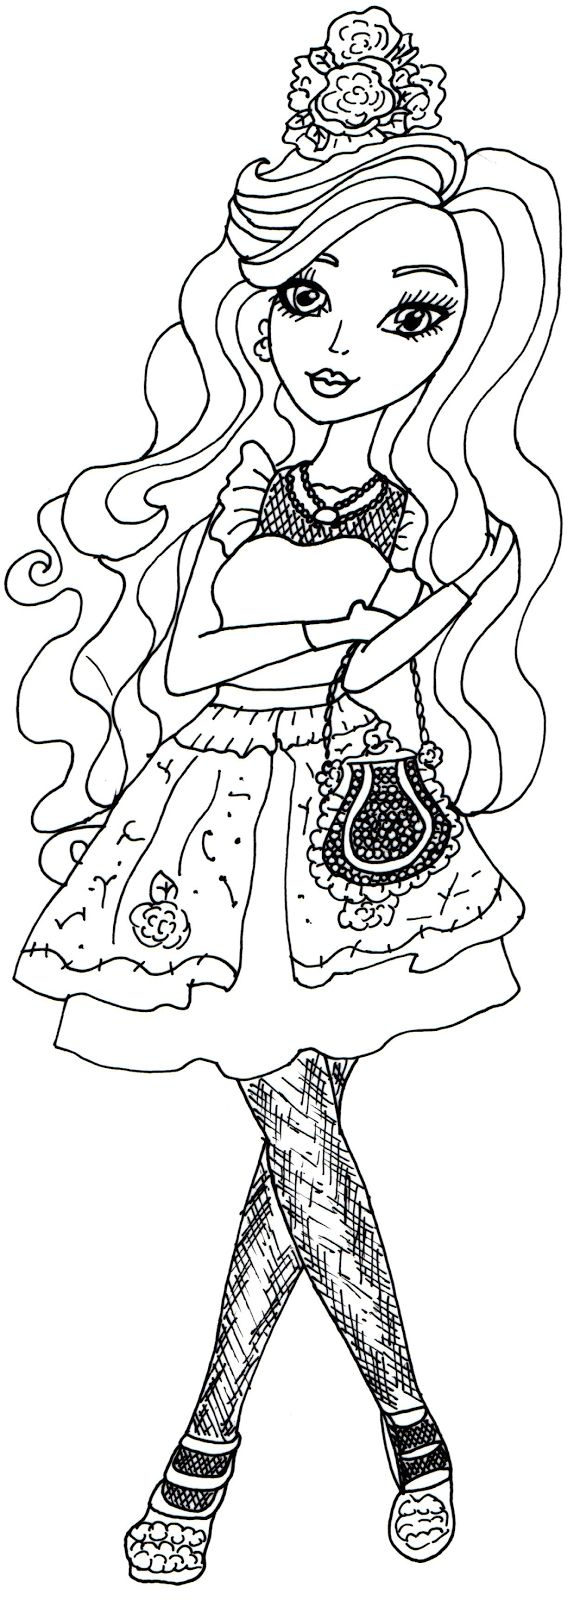 Ever after high coloring games online - Free Printable Ever After High Coloring Pages Briar Beauty